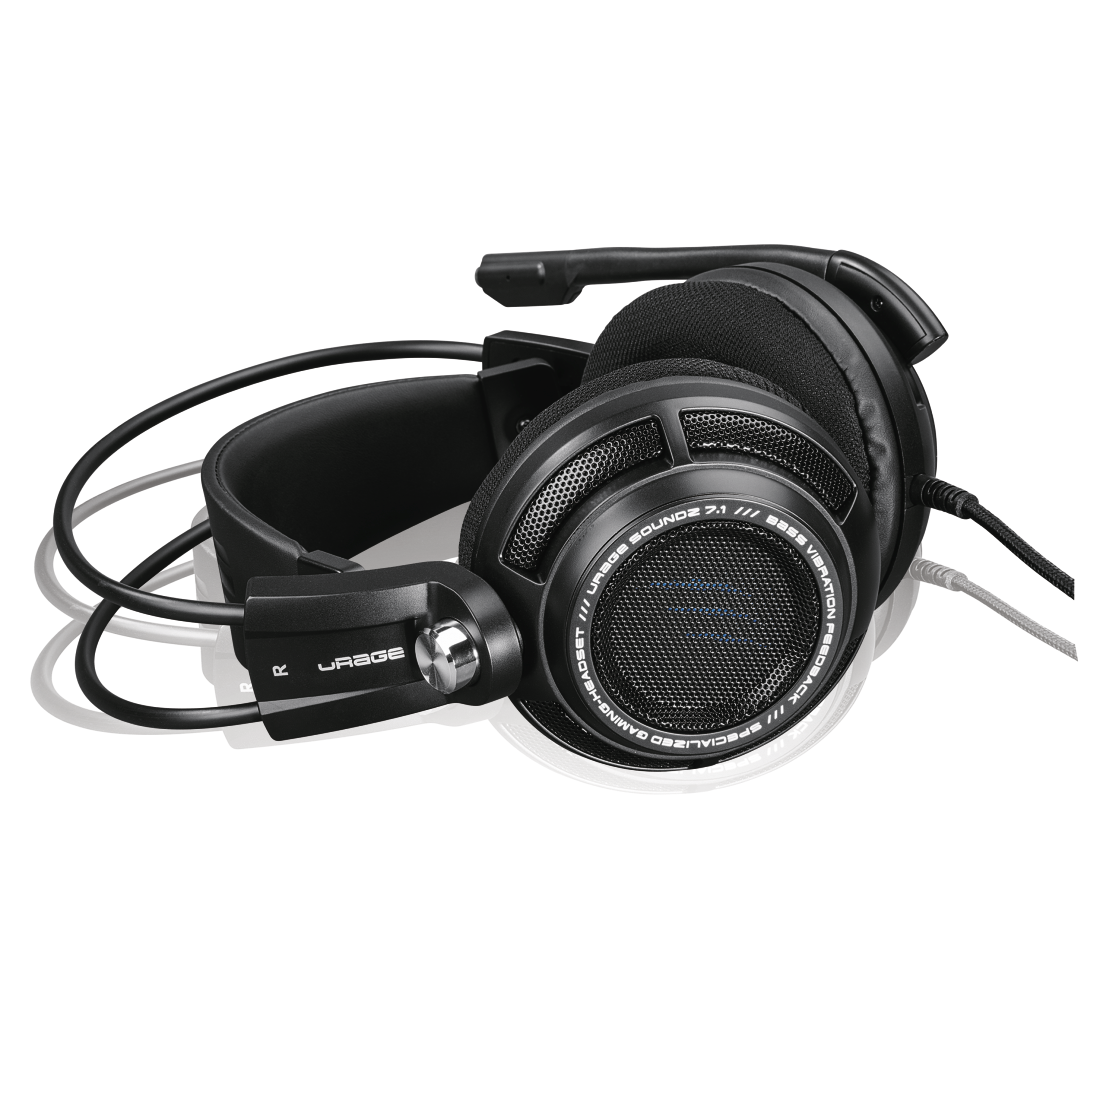 abx7 High-Res Image 7 - Hama, uRage SoundZ 7.1 Gaming Headset, black